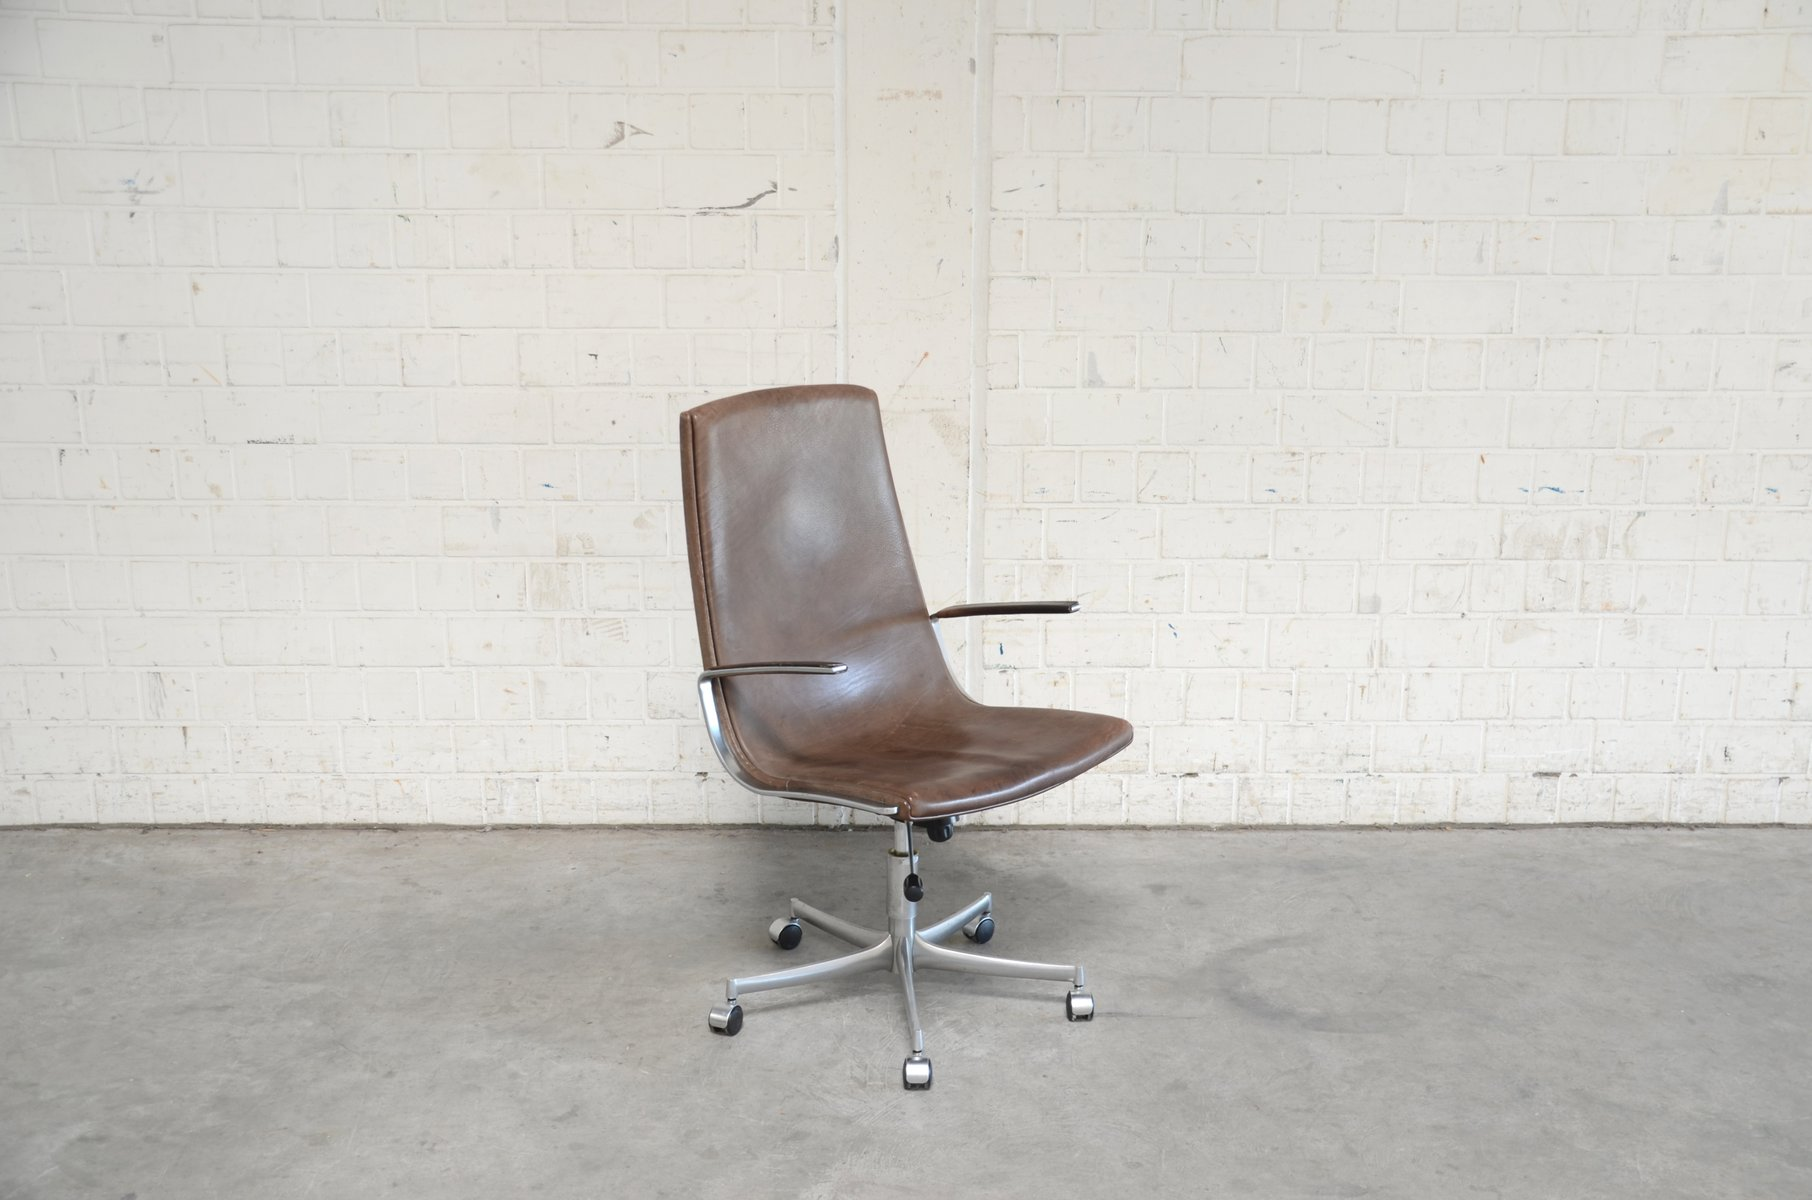 Vintage Model Logos Swivel Desk Chair By Bernd Münzebrock For Walter Knoll